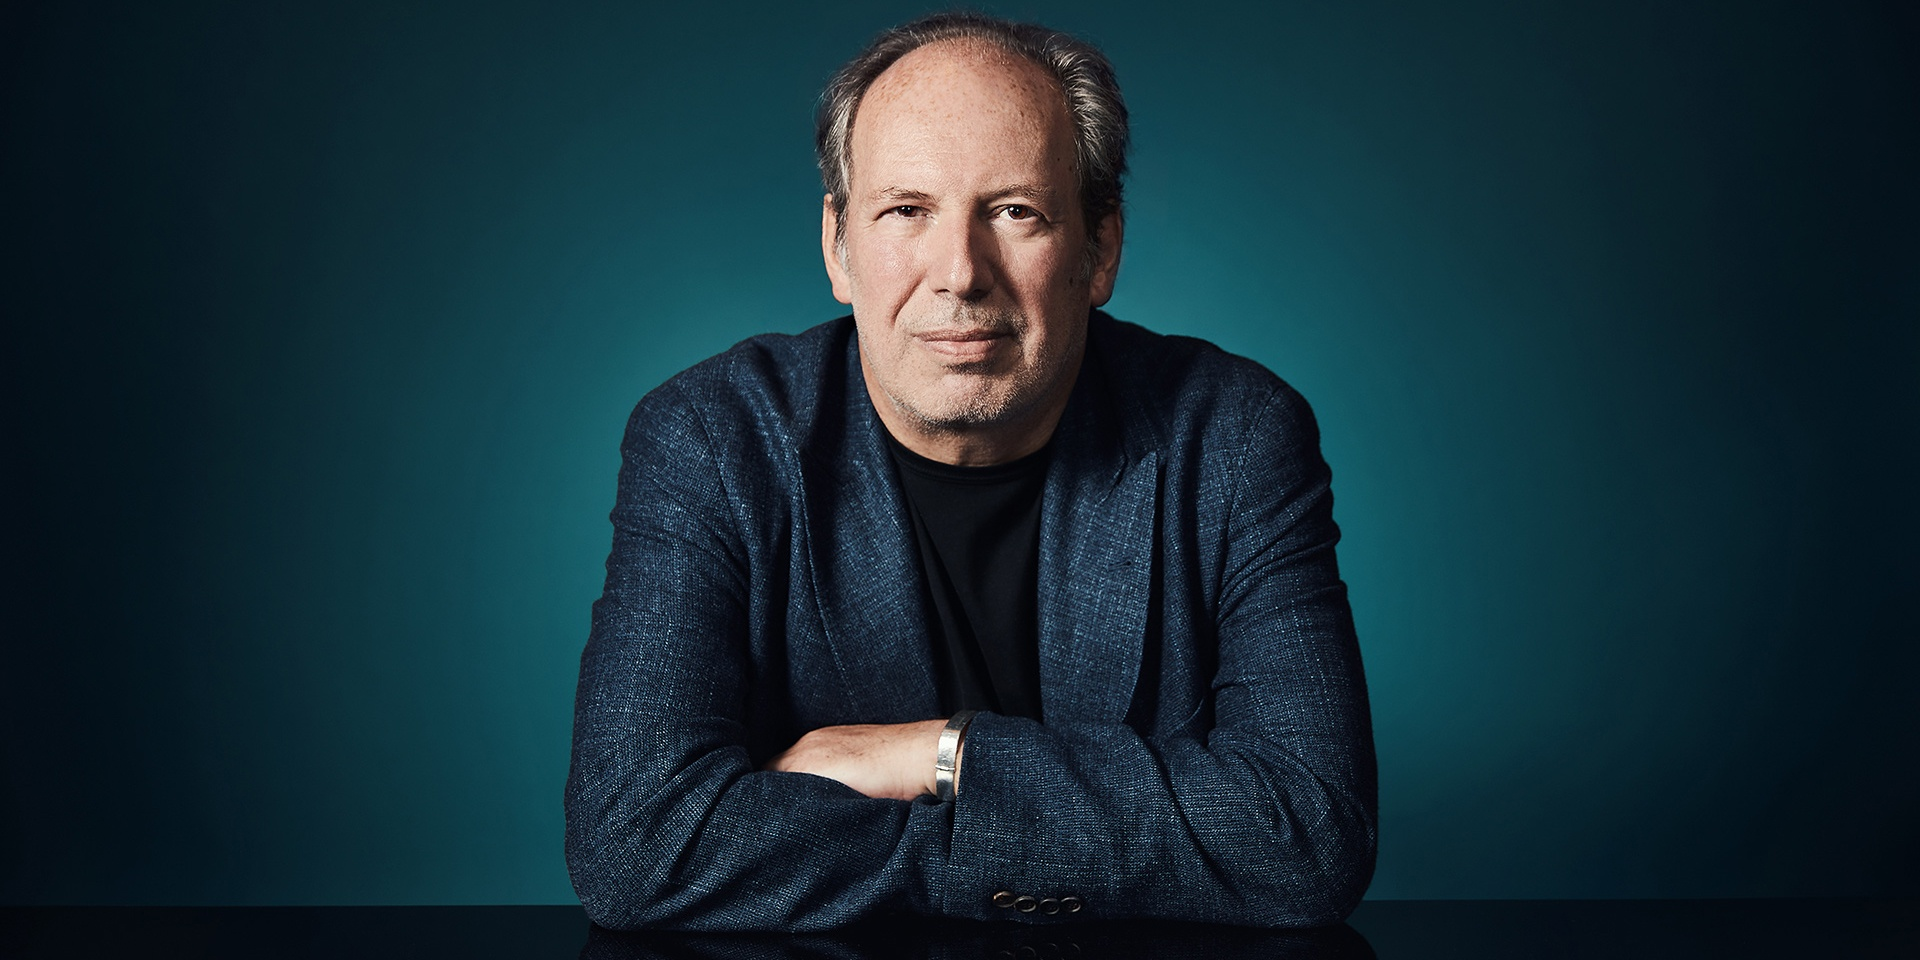 Sony Music and YouTube launch Hans Zimmer music video competition – open to creators worldwide